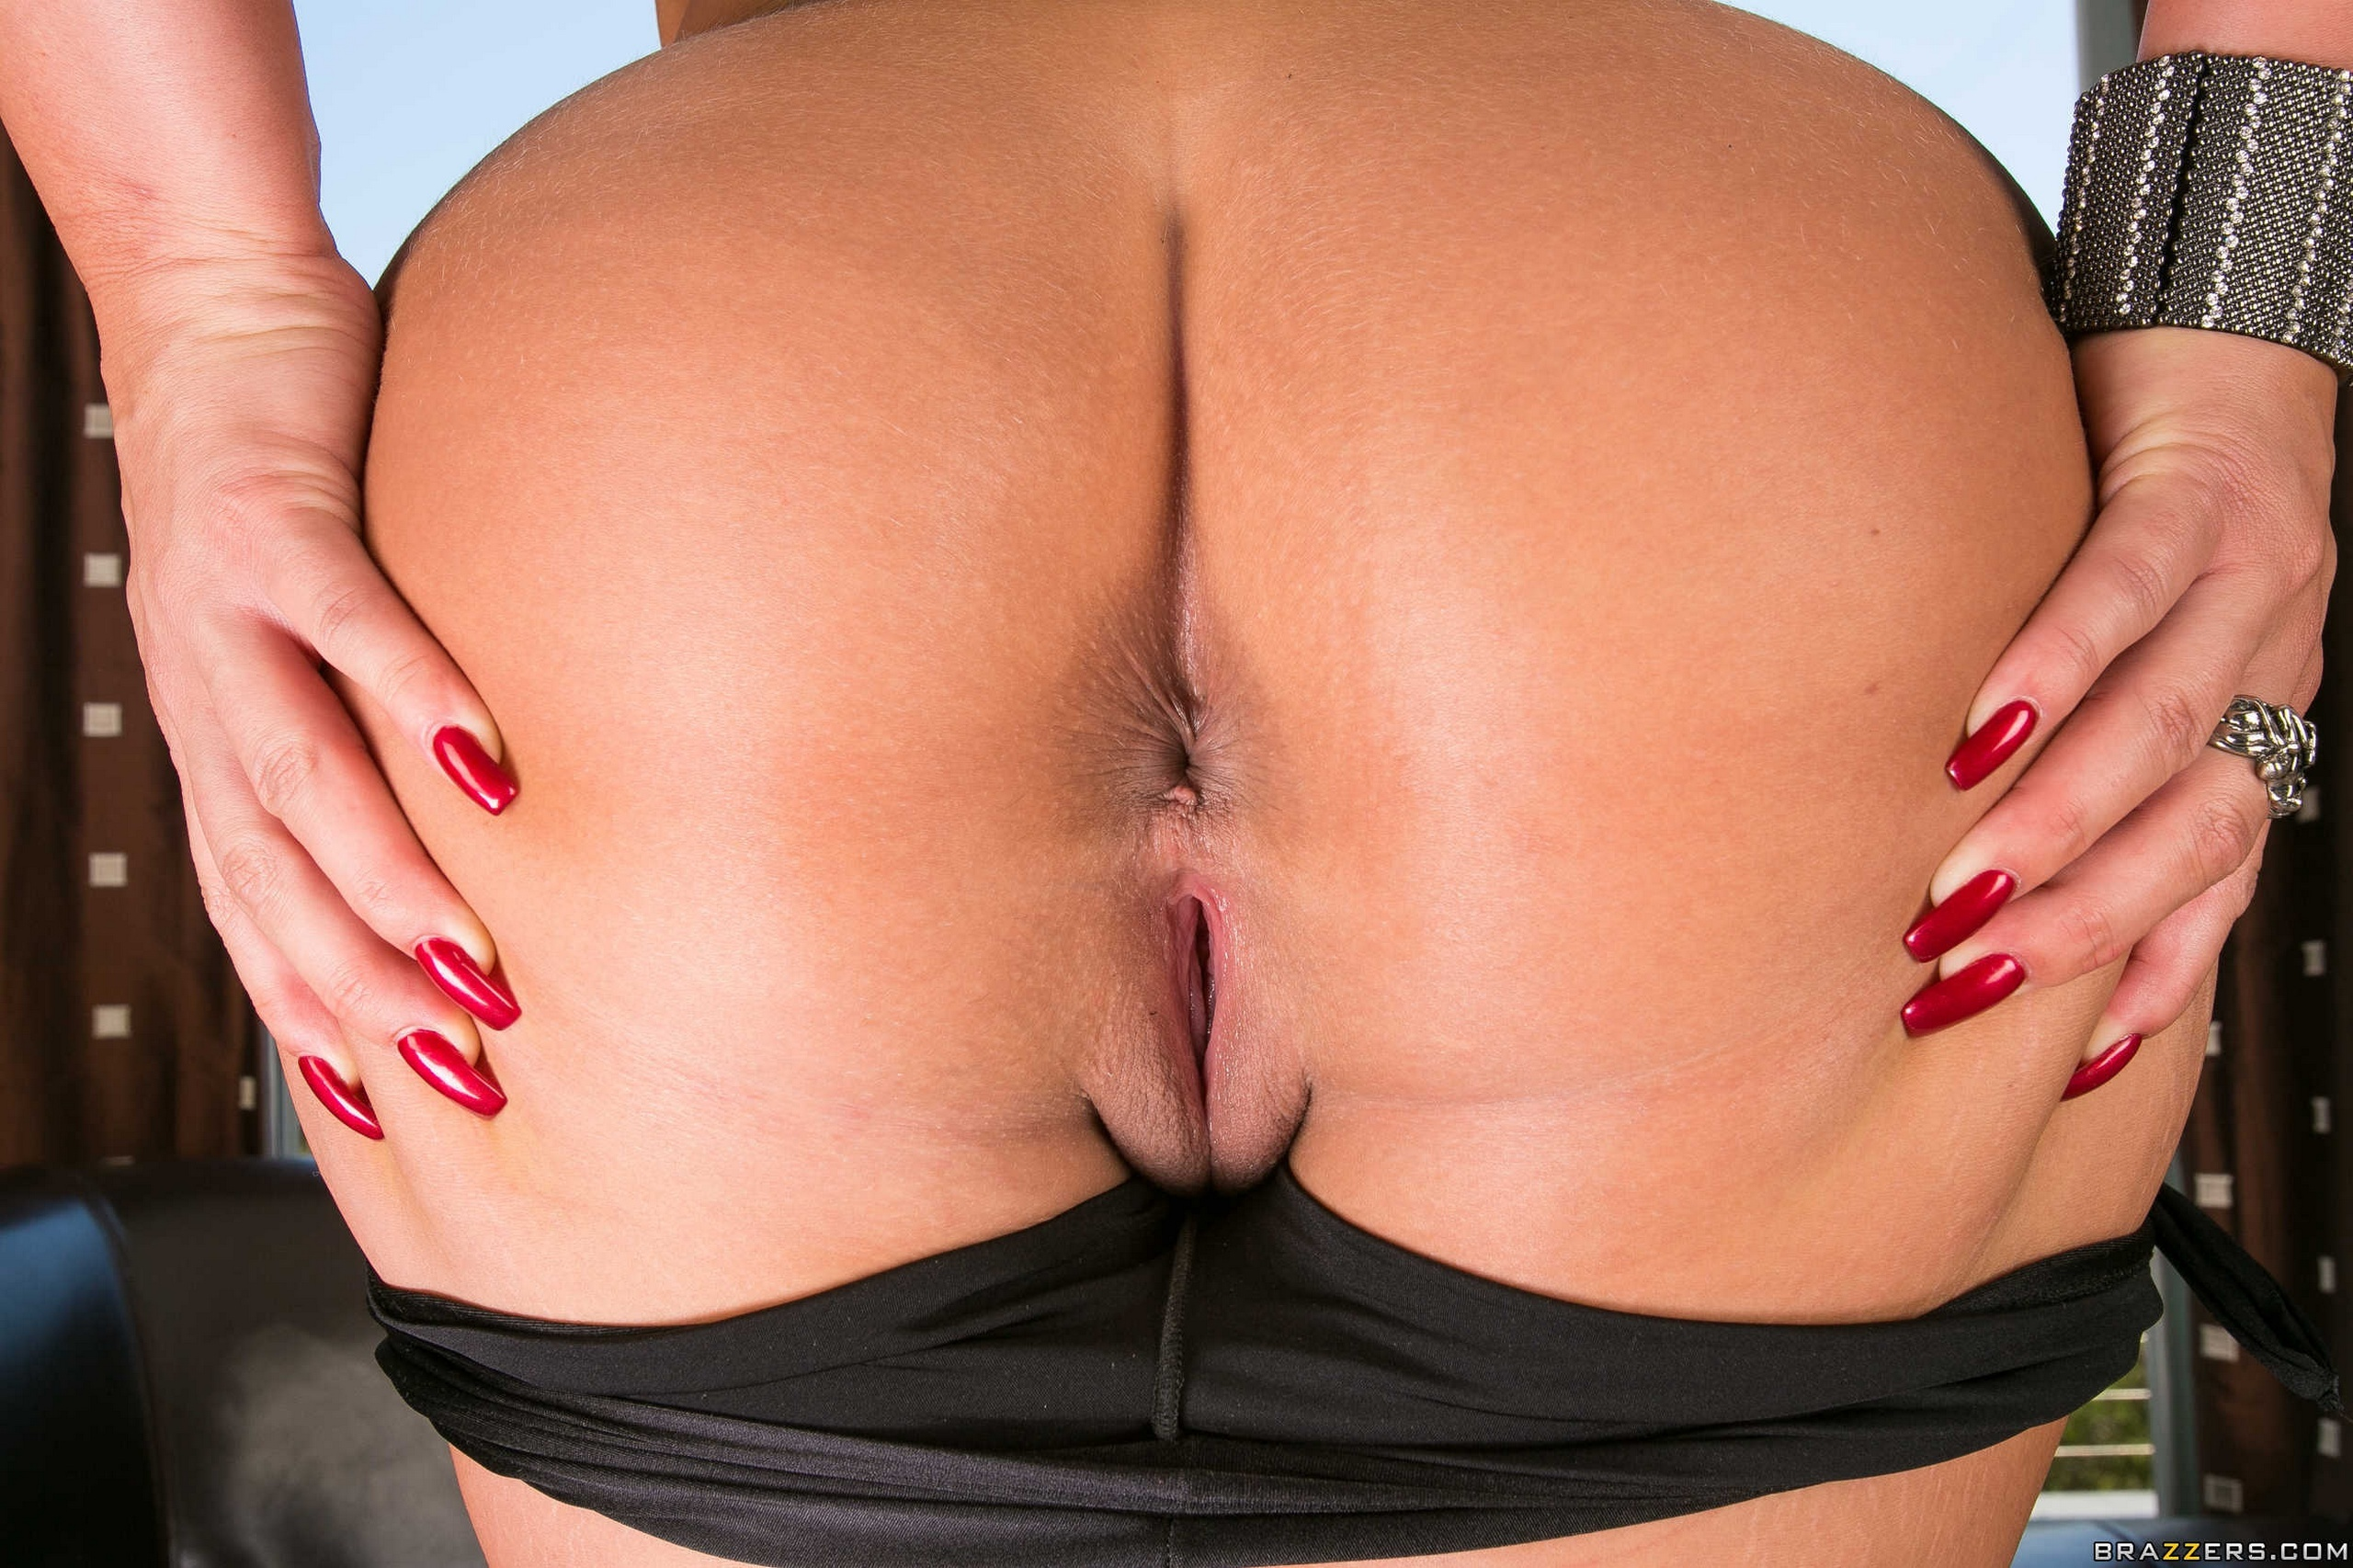 Wallpaper Phoenix Marie, Butt, Big Ass, Pussy, Hot, Sexy -8642